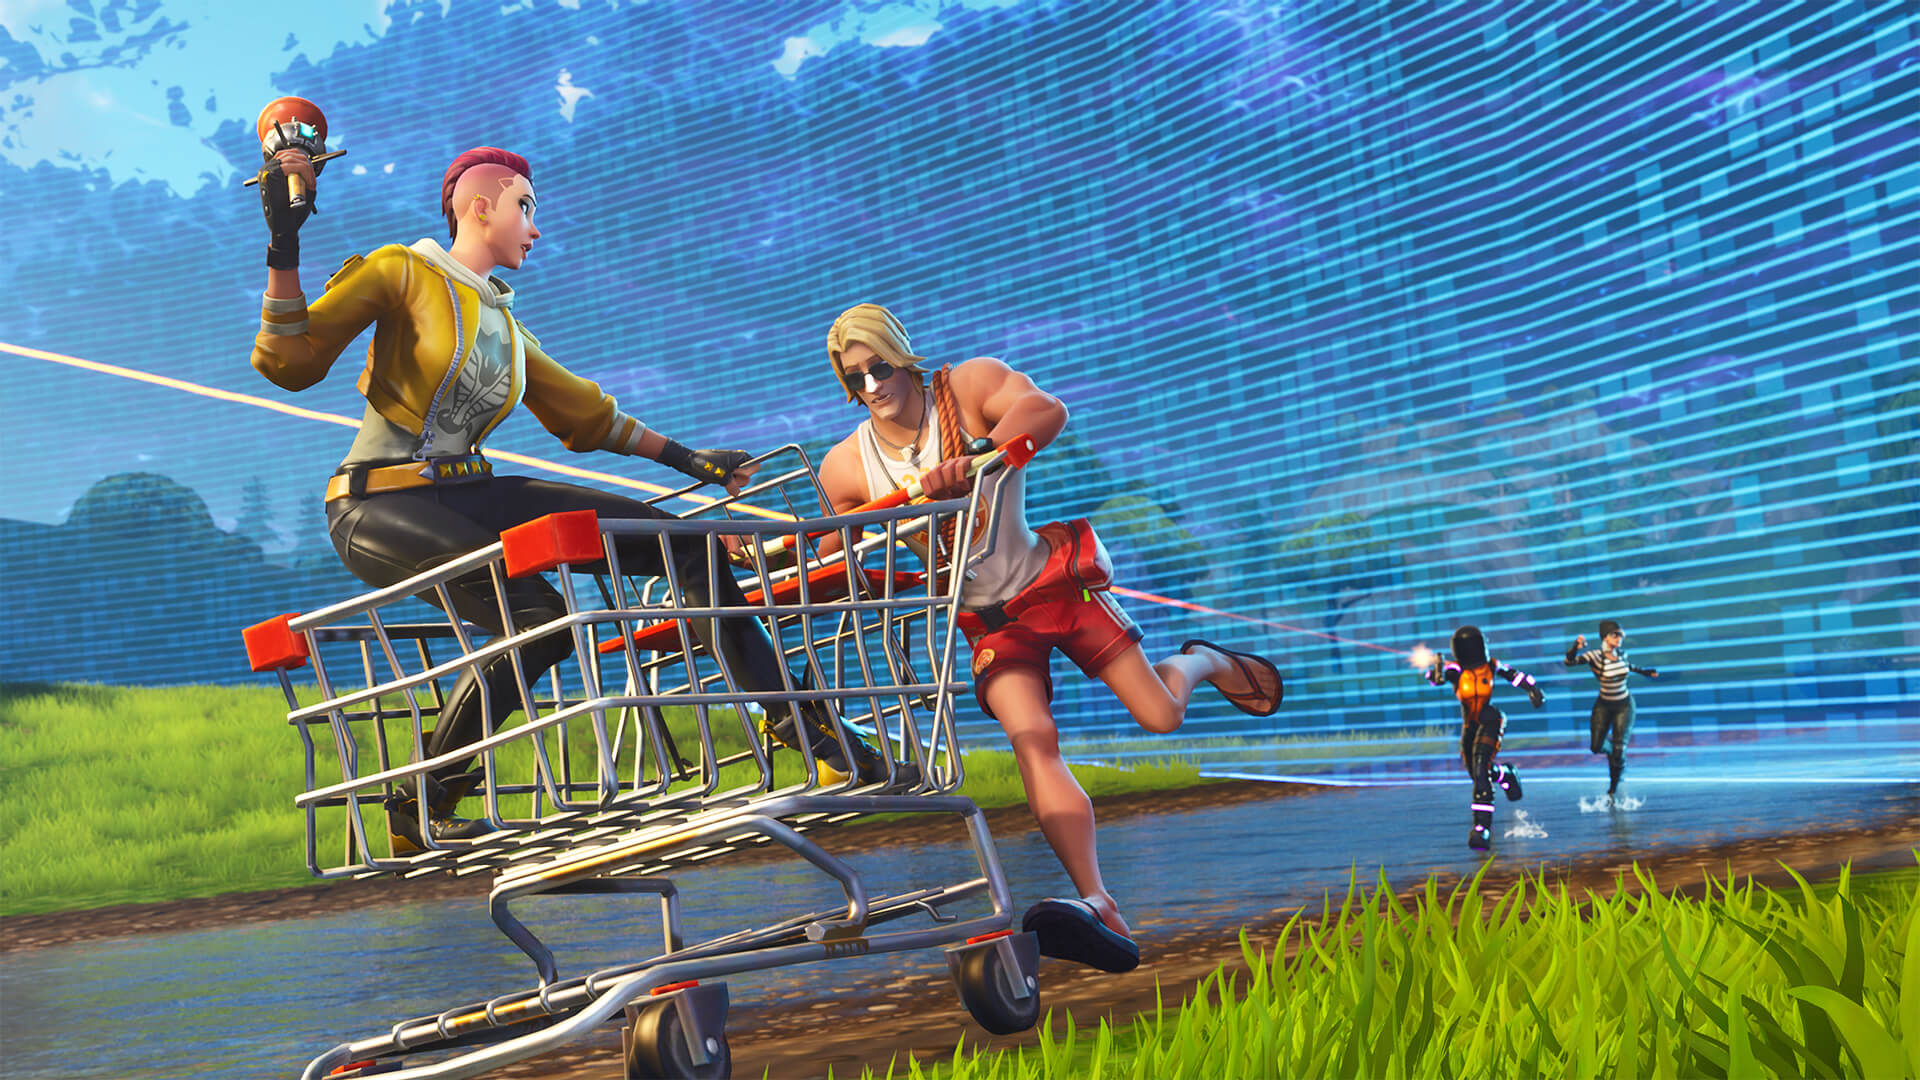 - is fortnite online free on switch